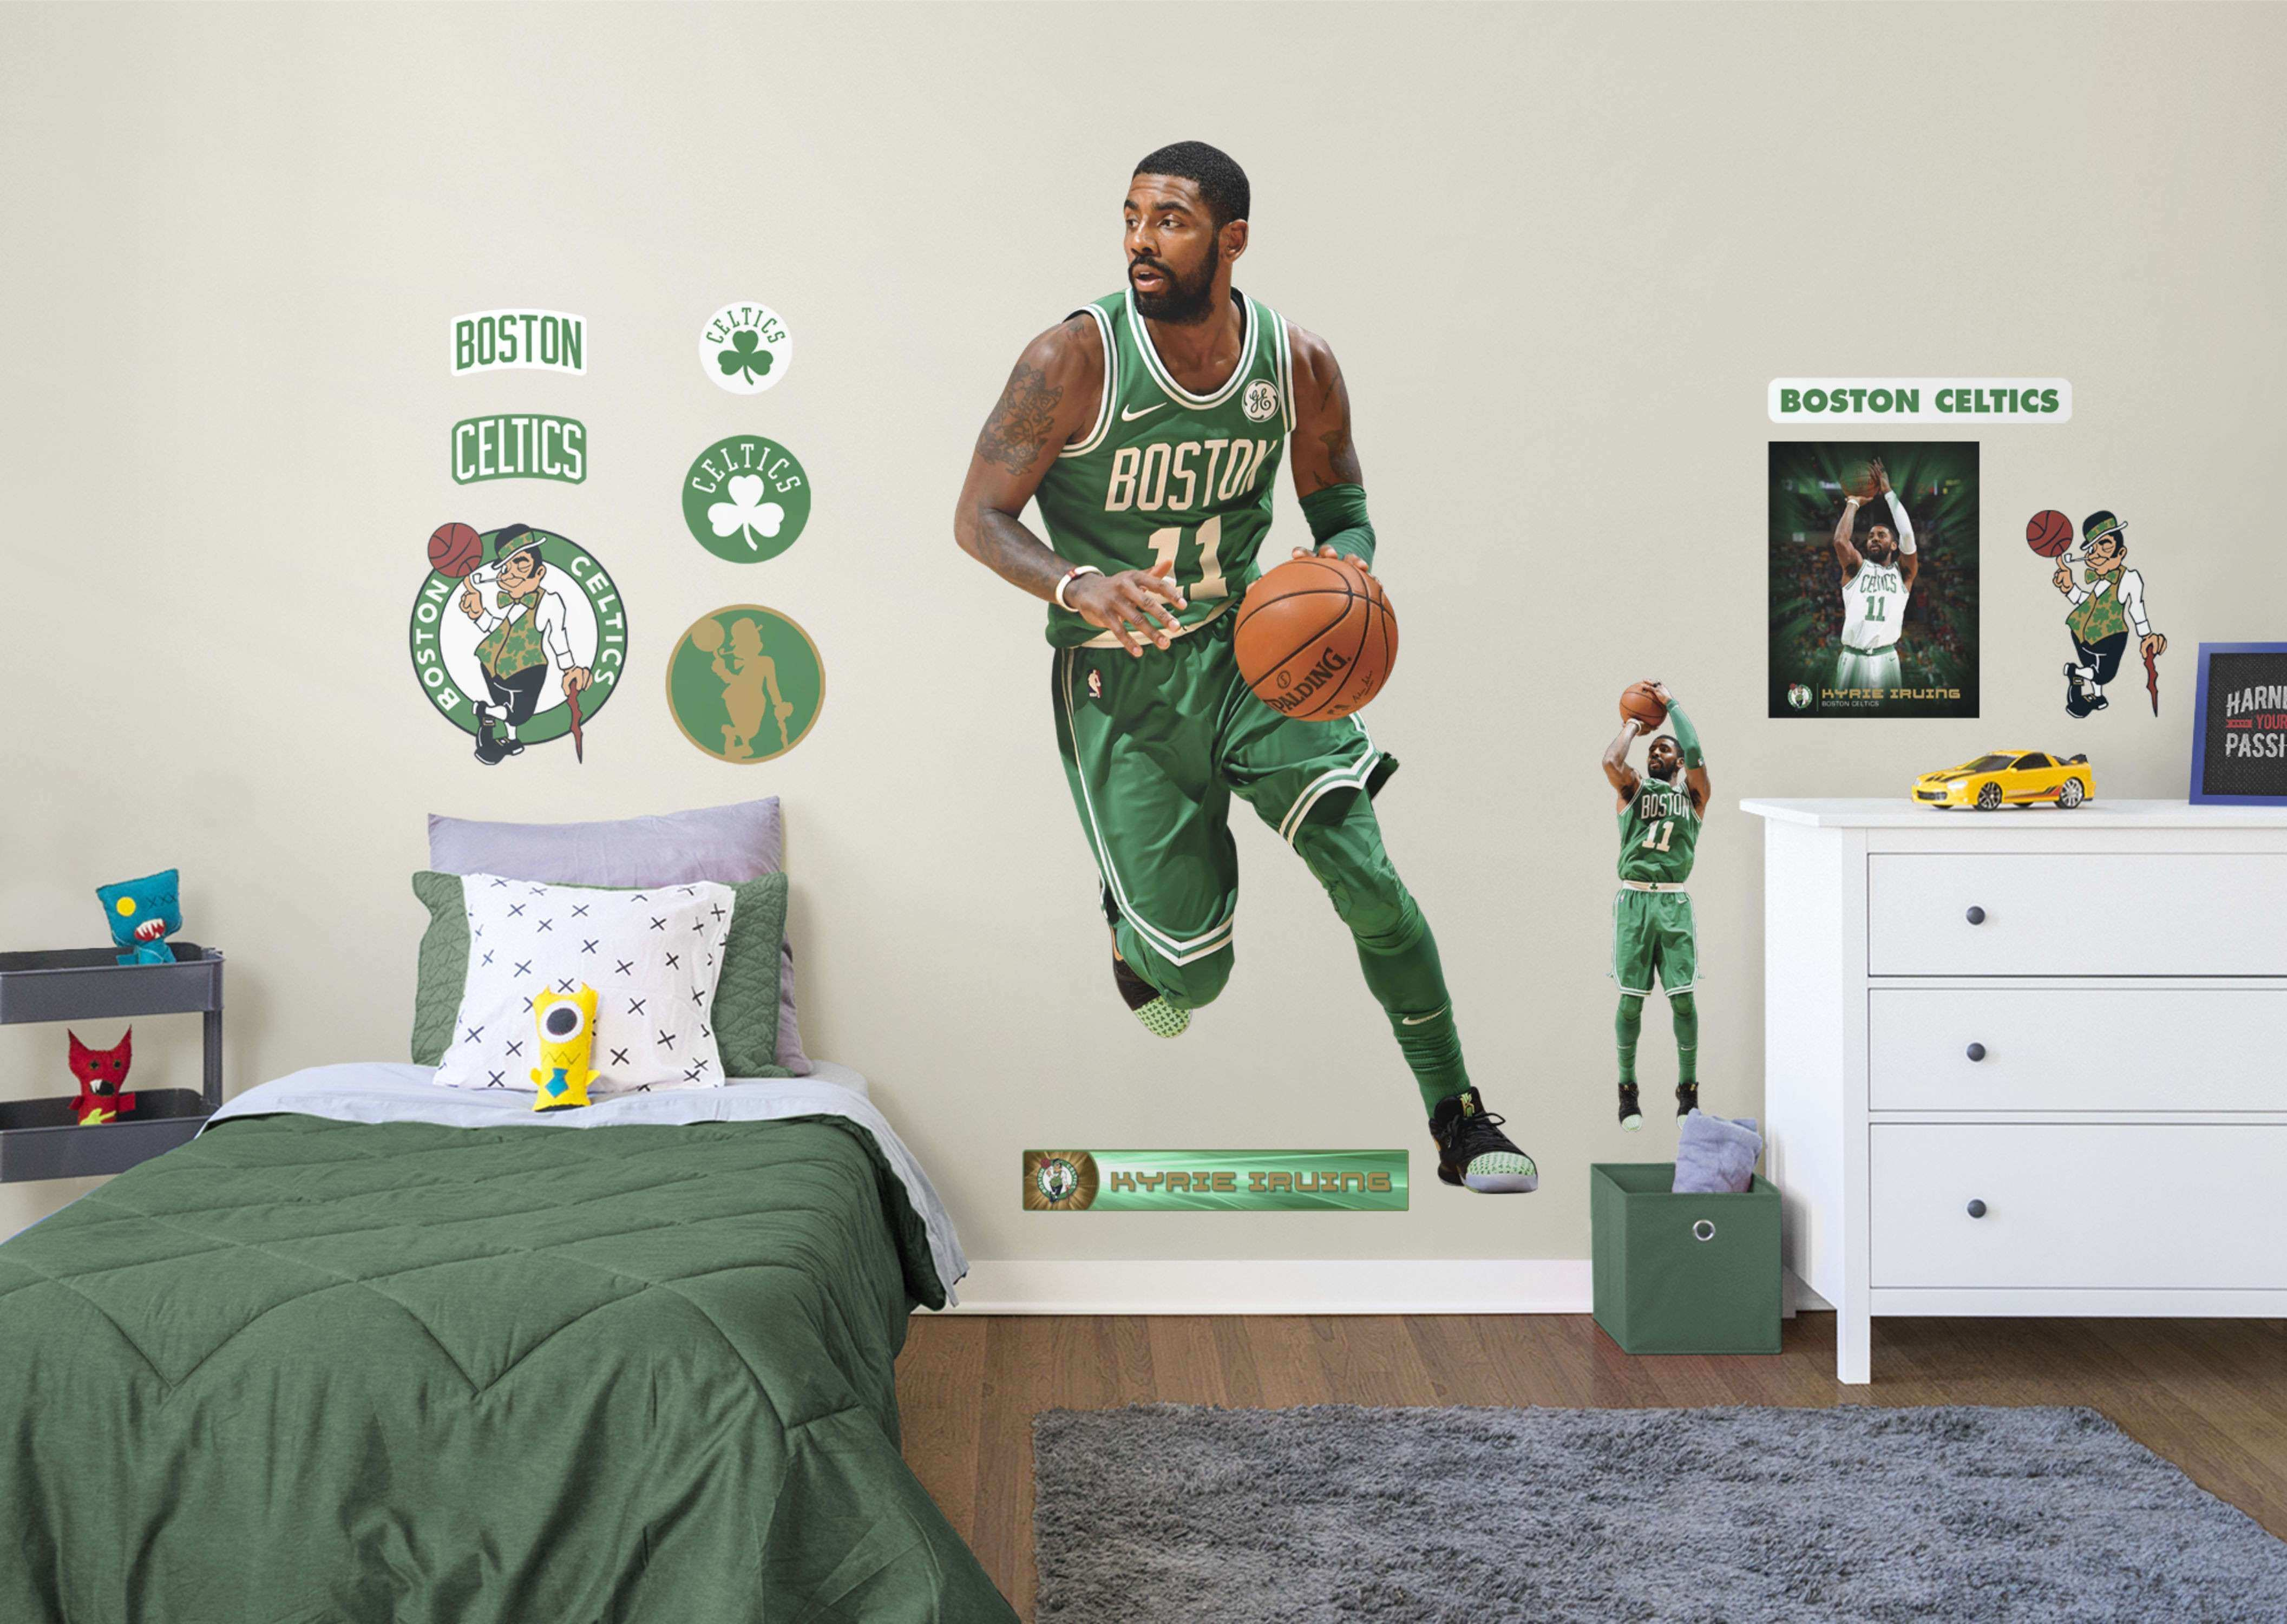 Life Size Kyrie Irving Fathead Wall Decal